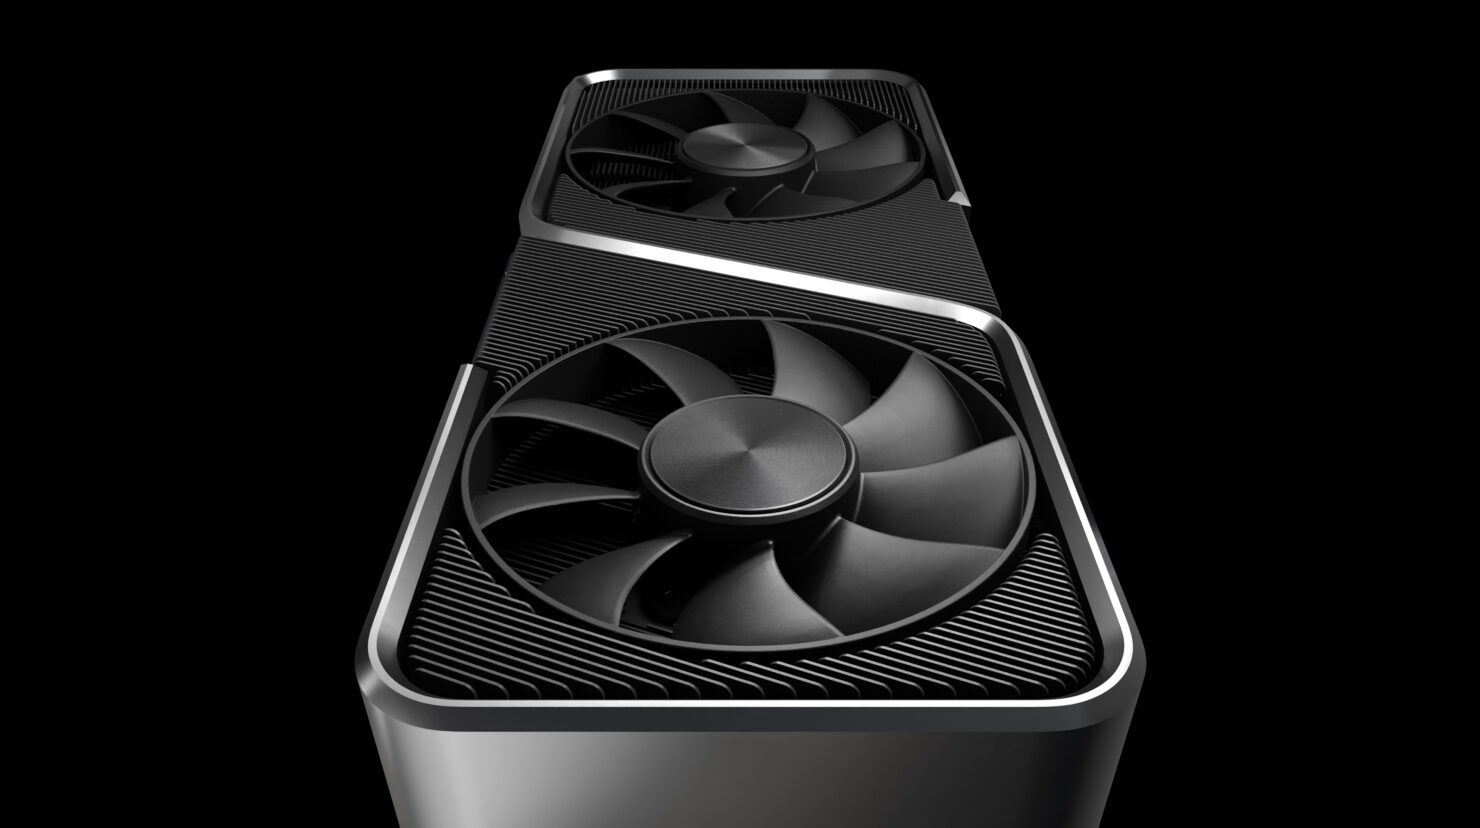 geforce-rtx-3070-product-gallery-full-screen-3840-1